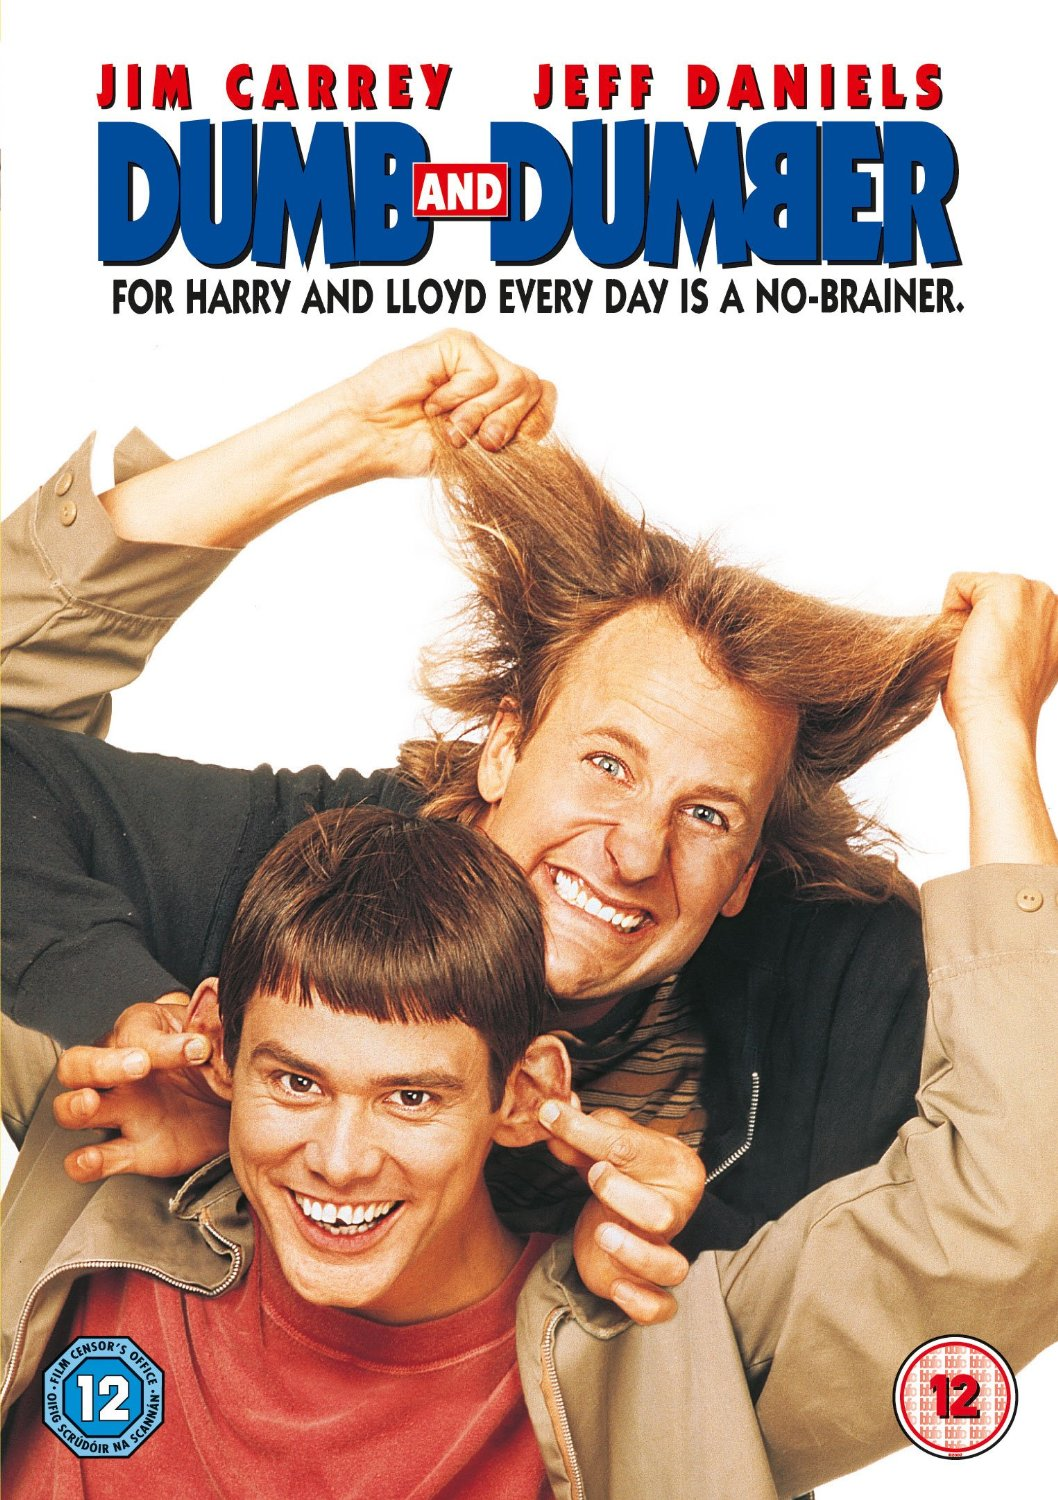 Dumb and Dumber - comedy film